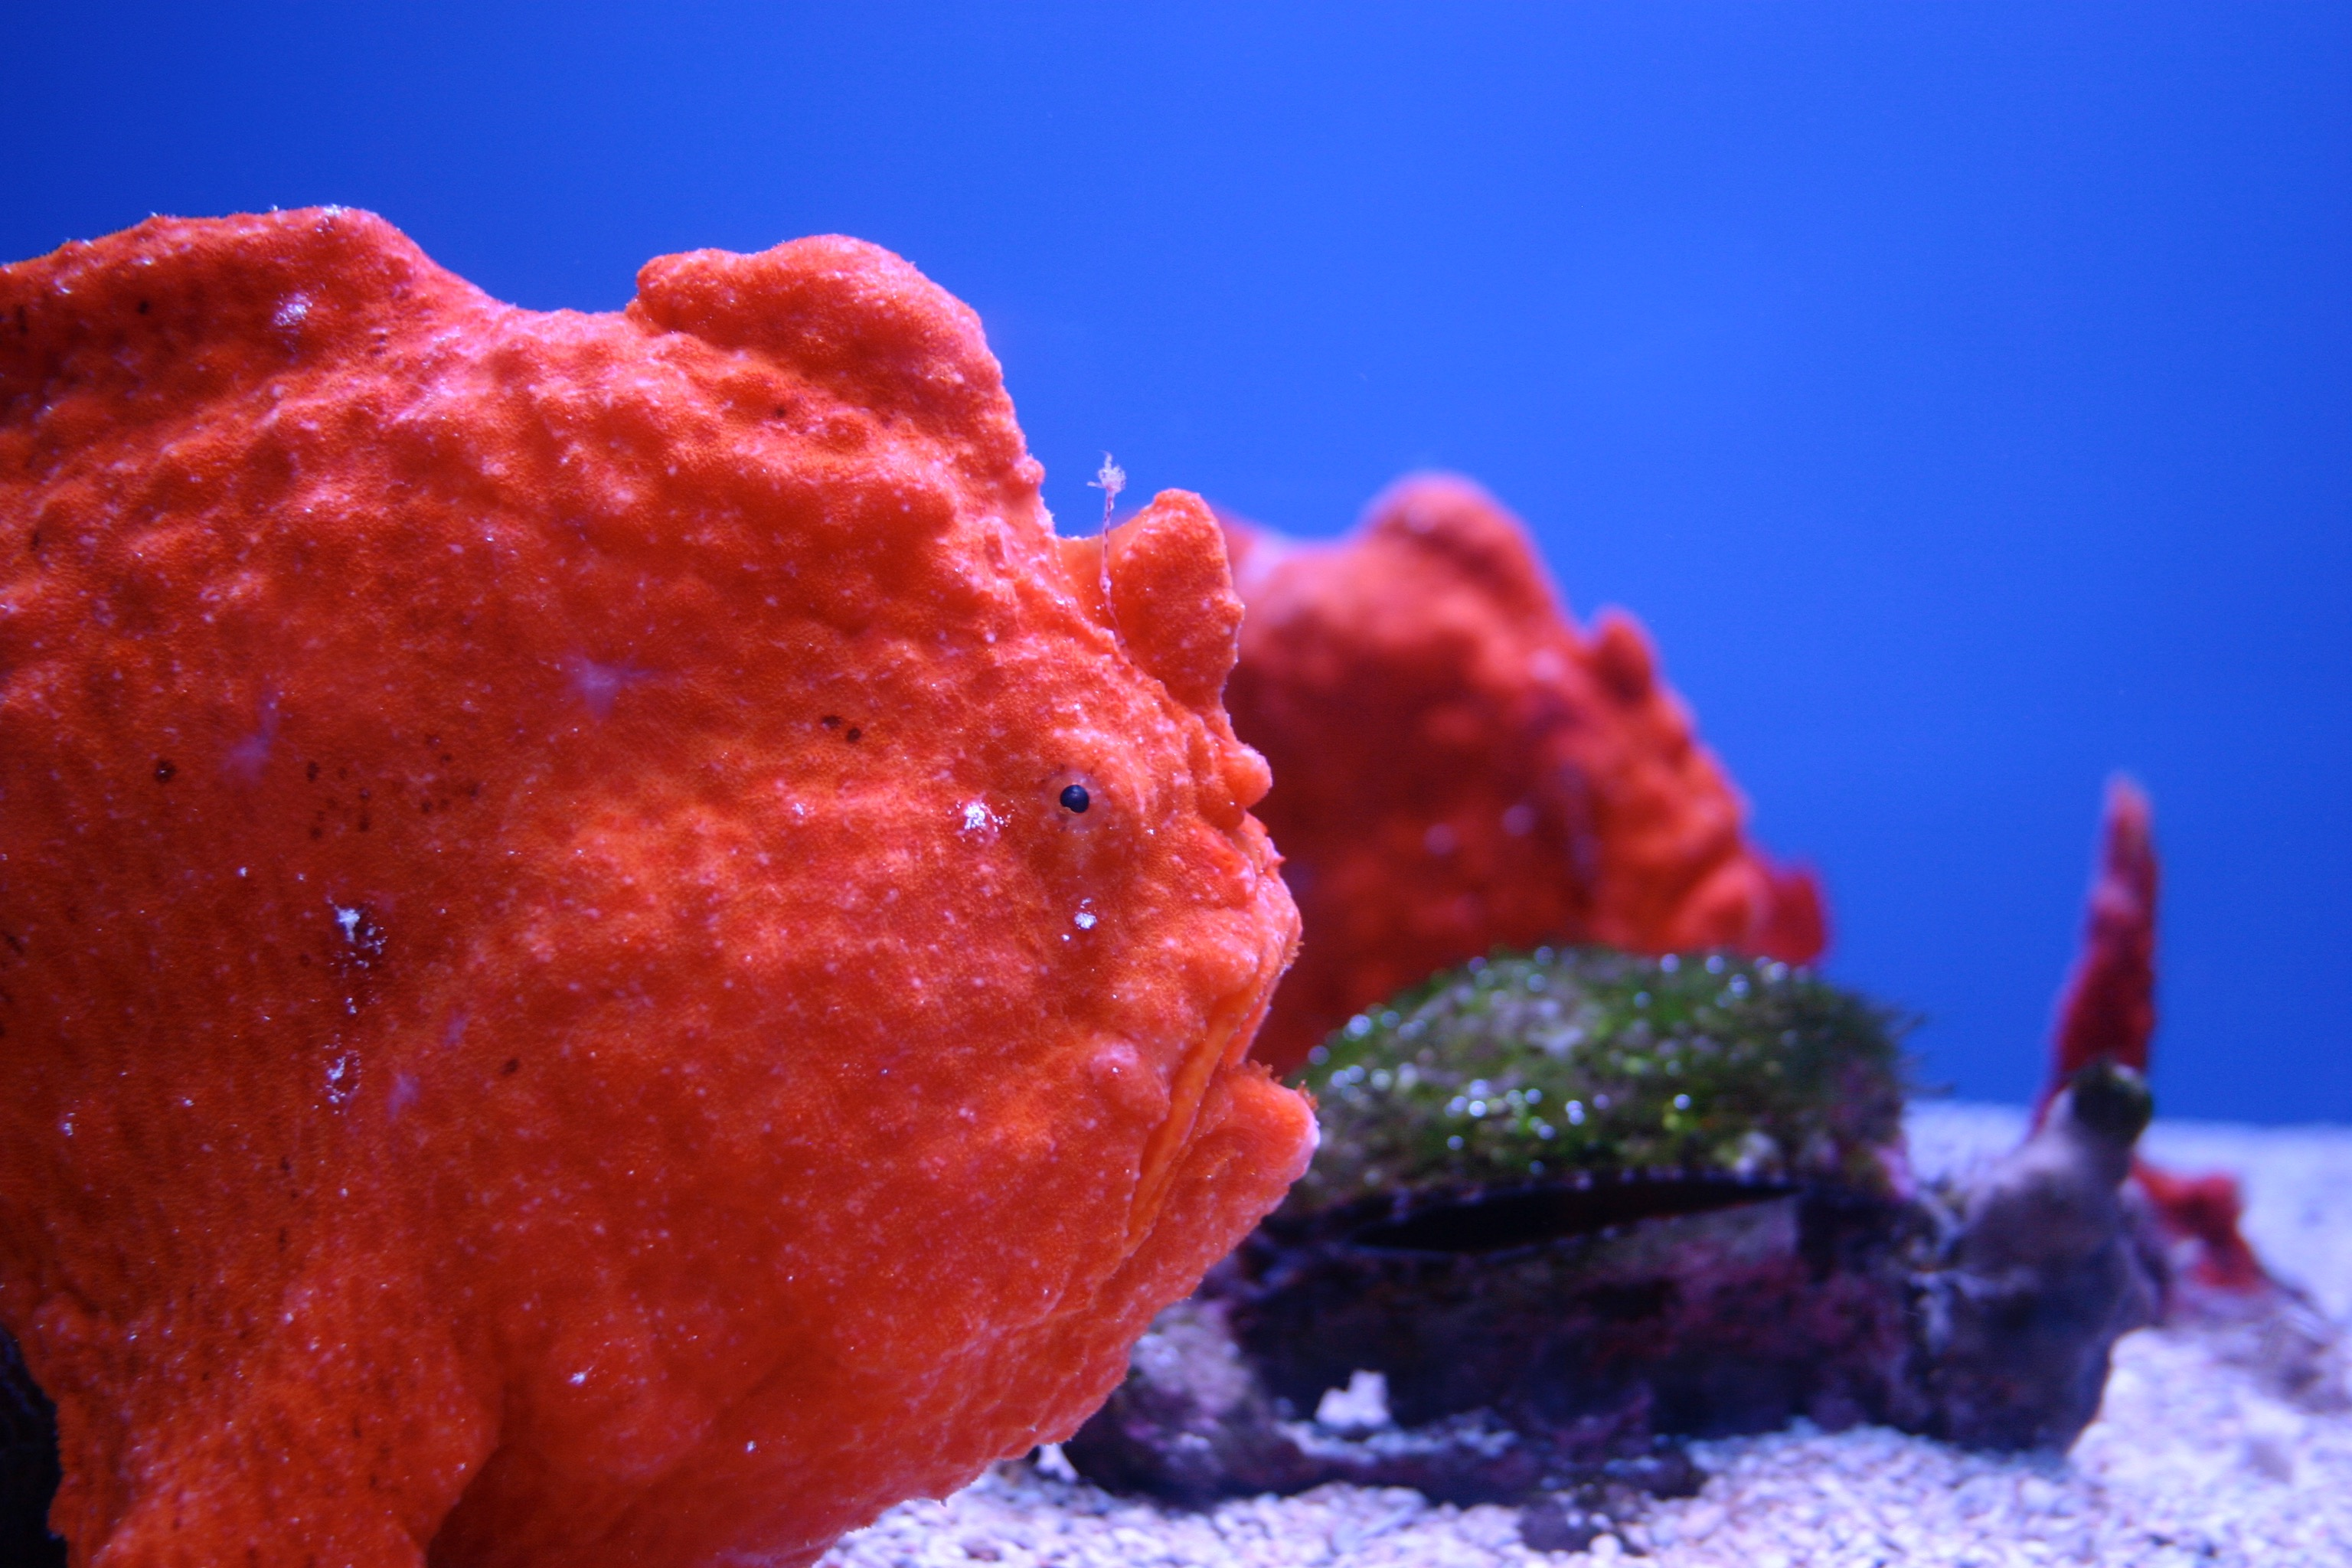 This lumpy bumpy strange red sea creature is called a frogfish.